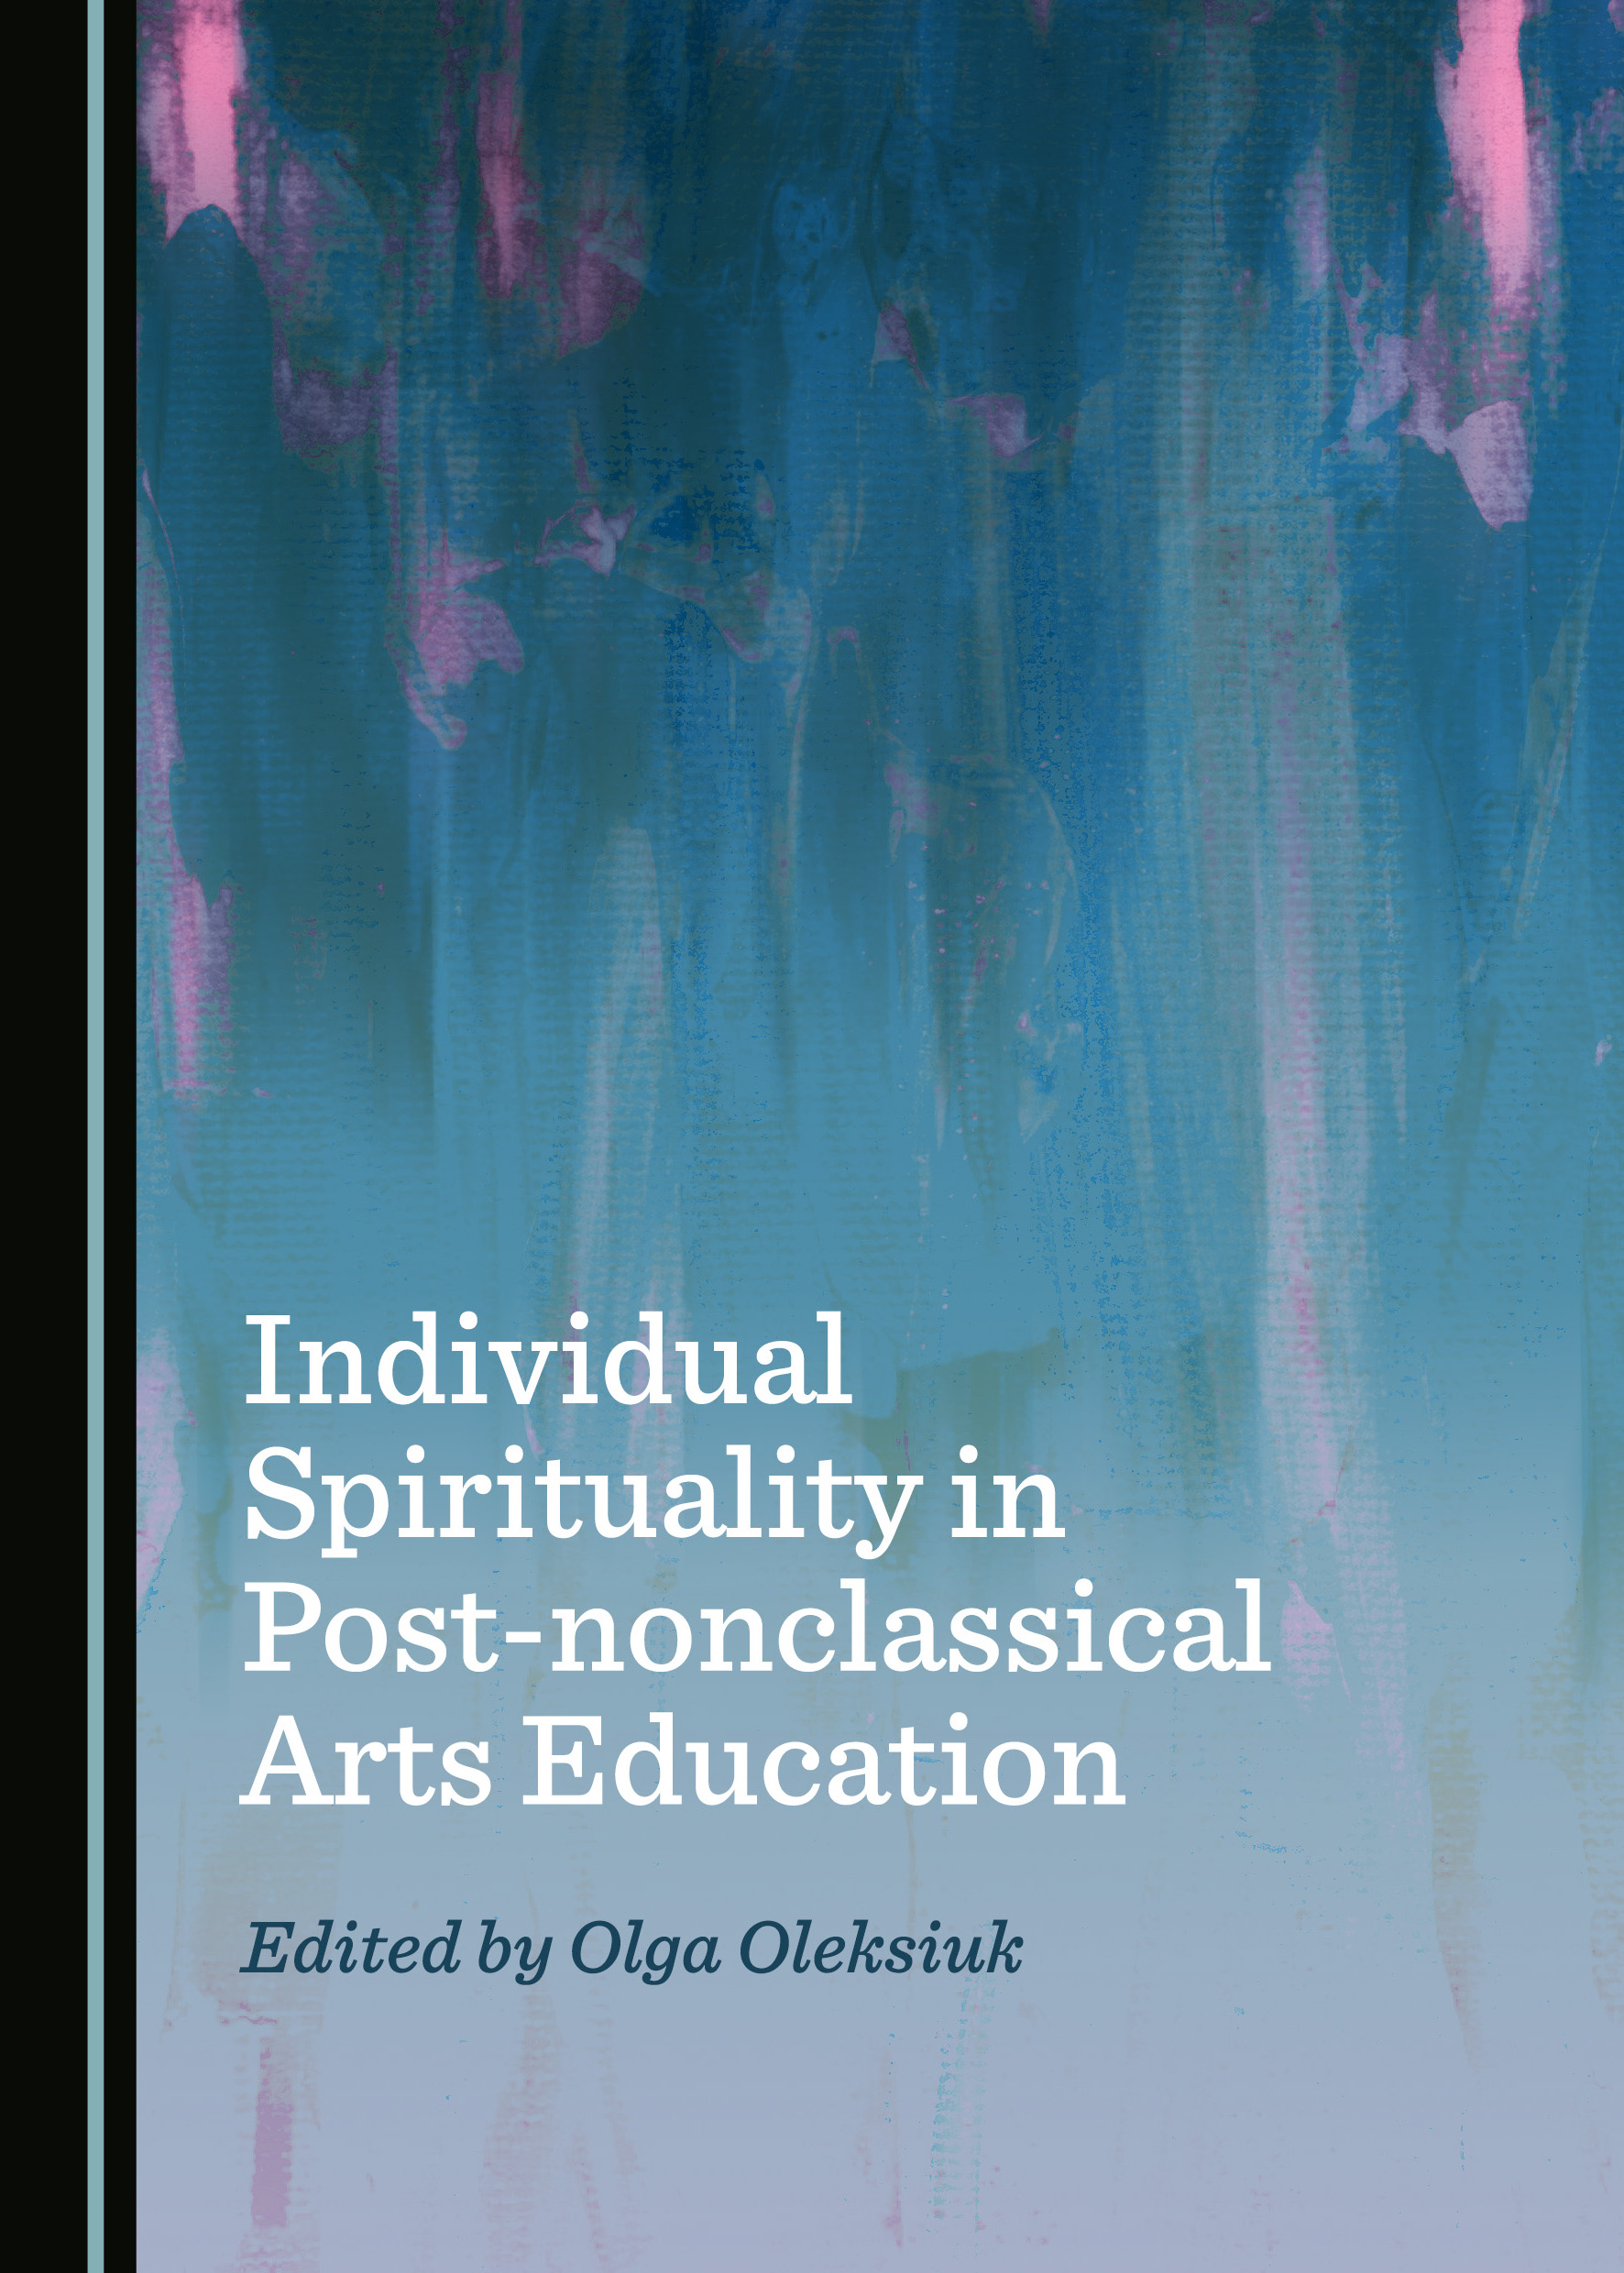 Individual Spirituality in Post-nonclassical Arts Education